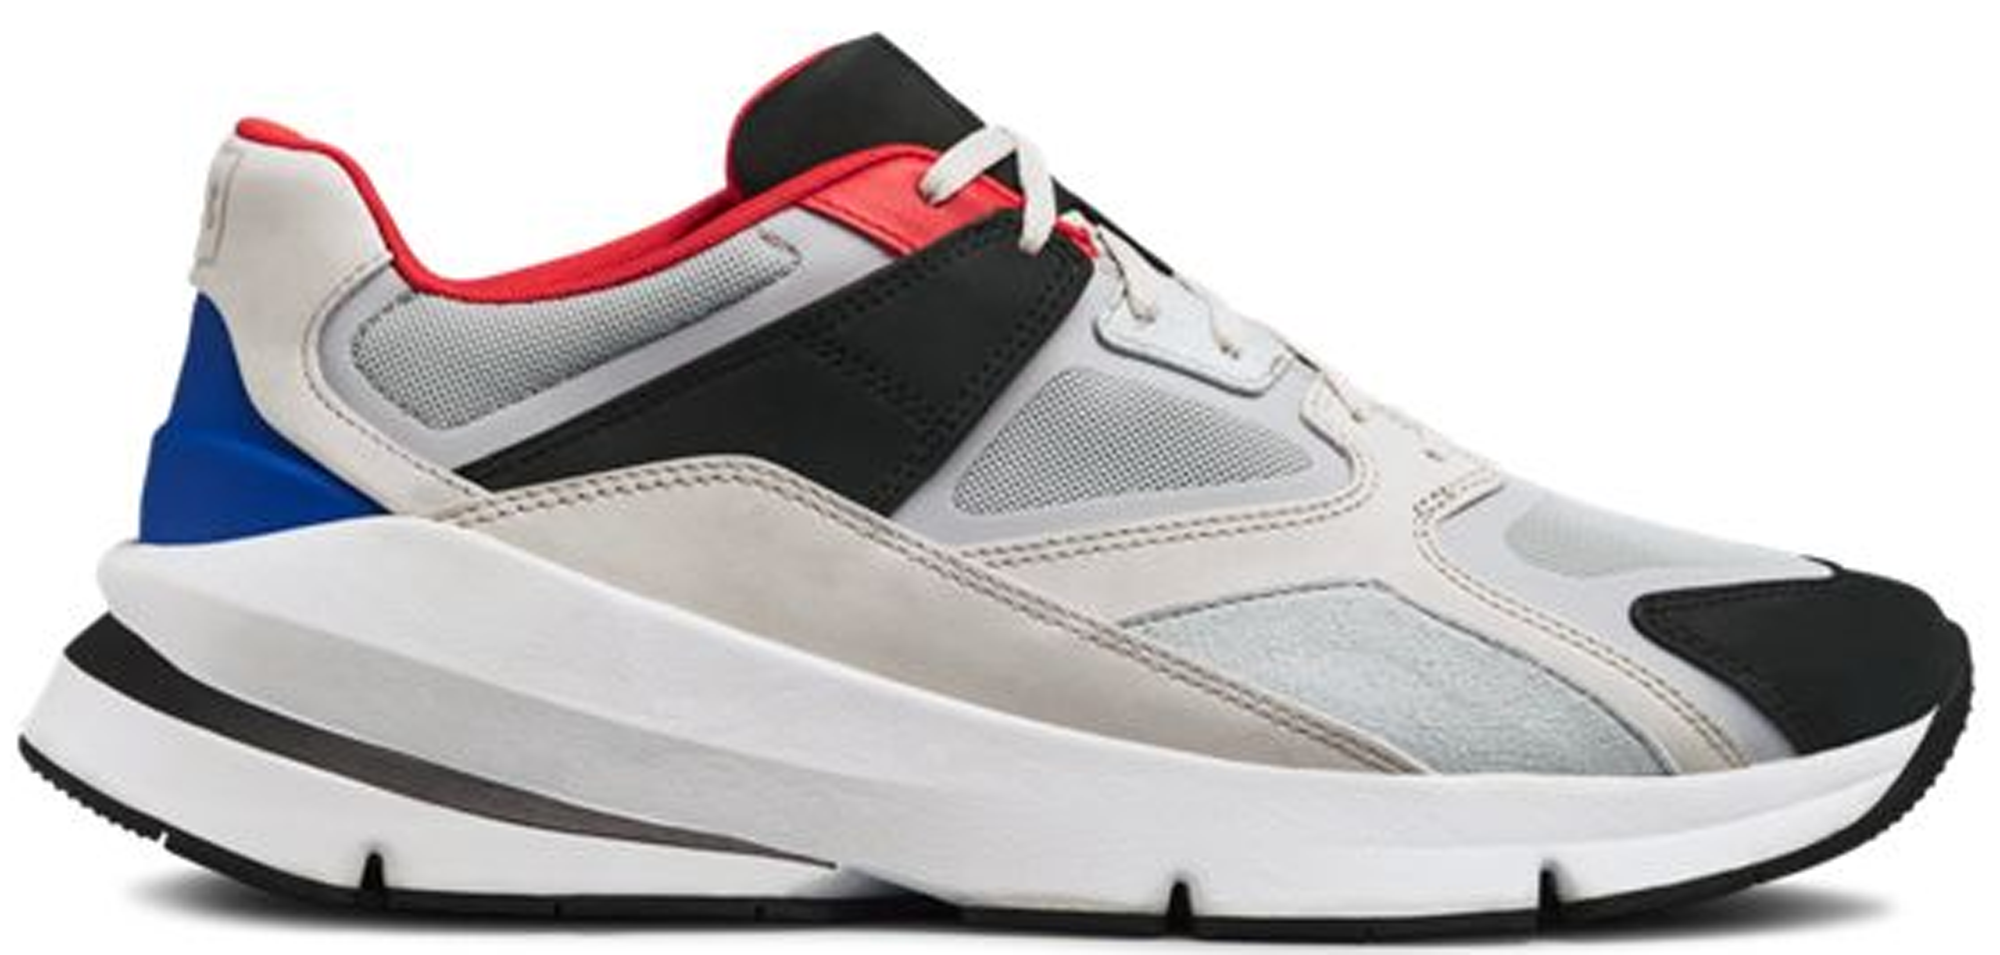 Under Armour Forge 96 White Grey Black